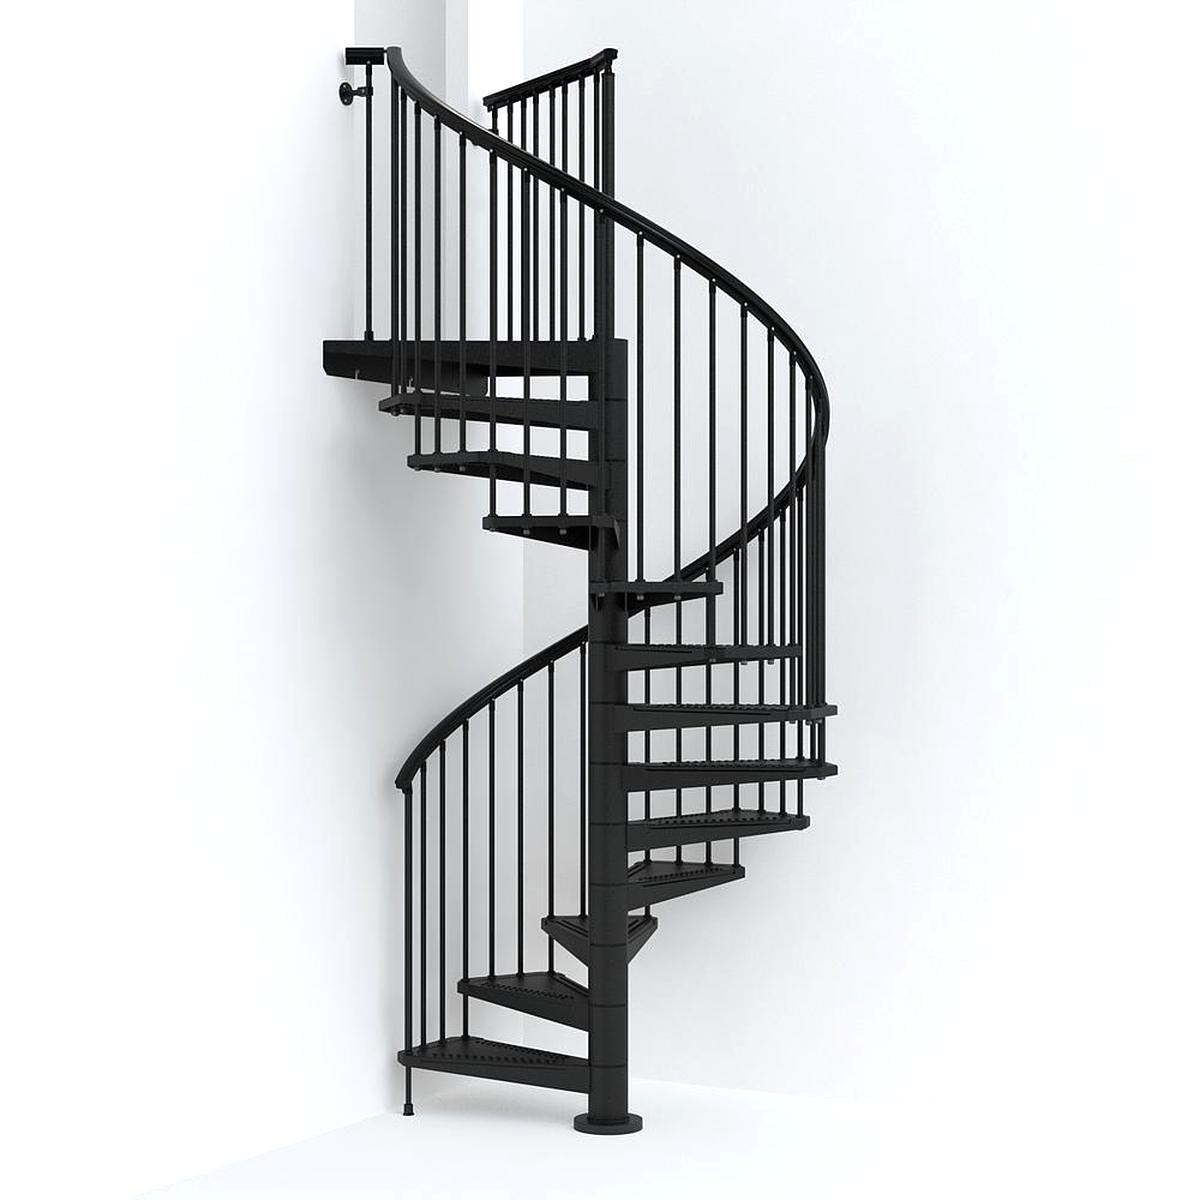 Spiral Staircase For Sale Only 2 Left At 65   Steel Spiral Staircase For Sale   Wrought Iron   Staircase Design   Kits   Cast Iron   Stair Handrail